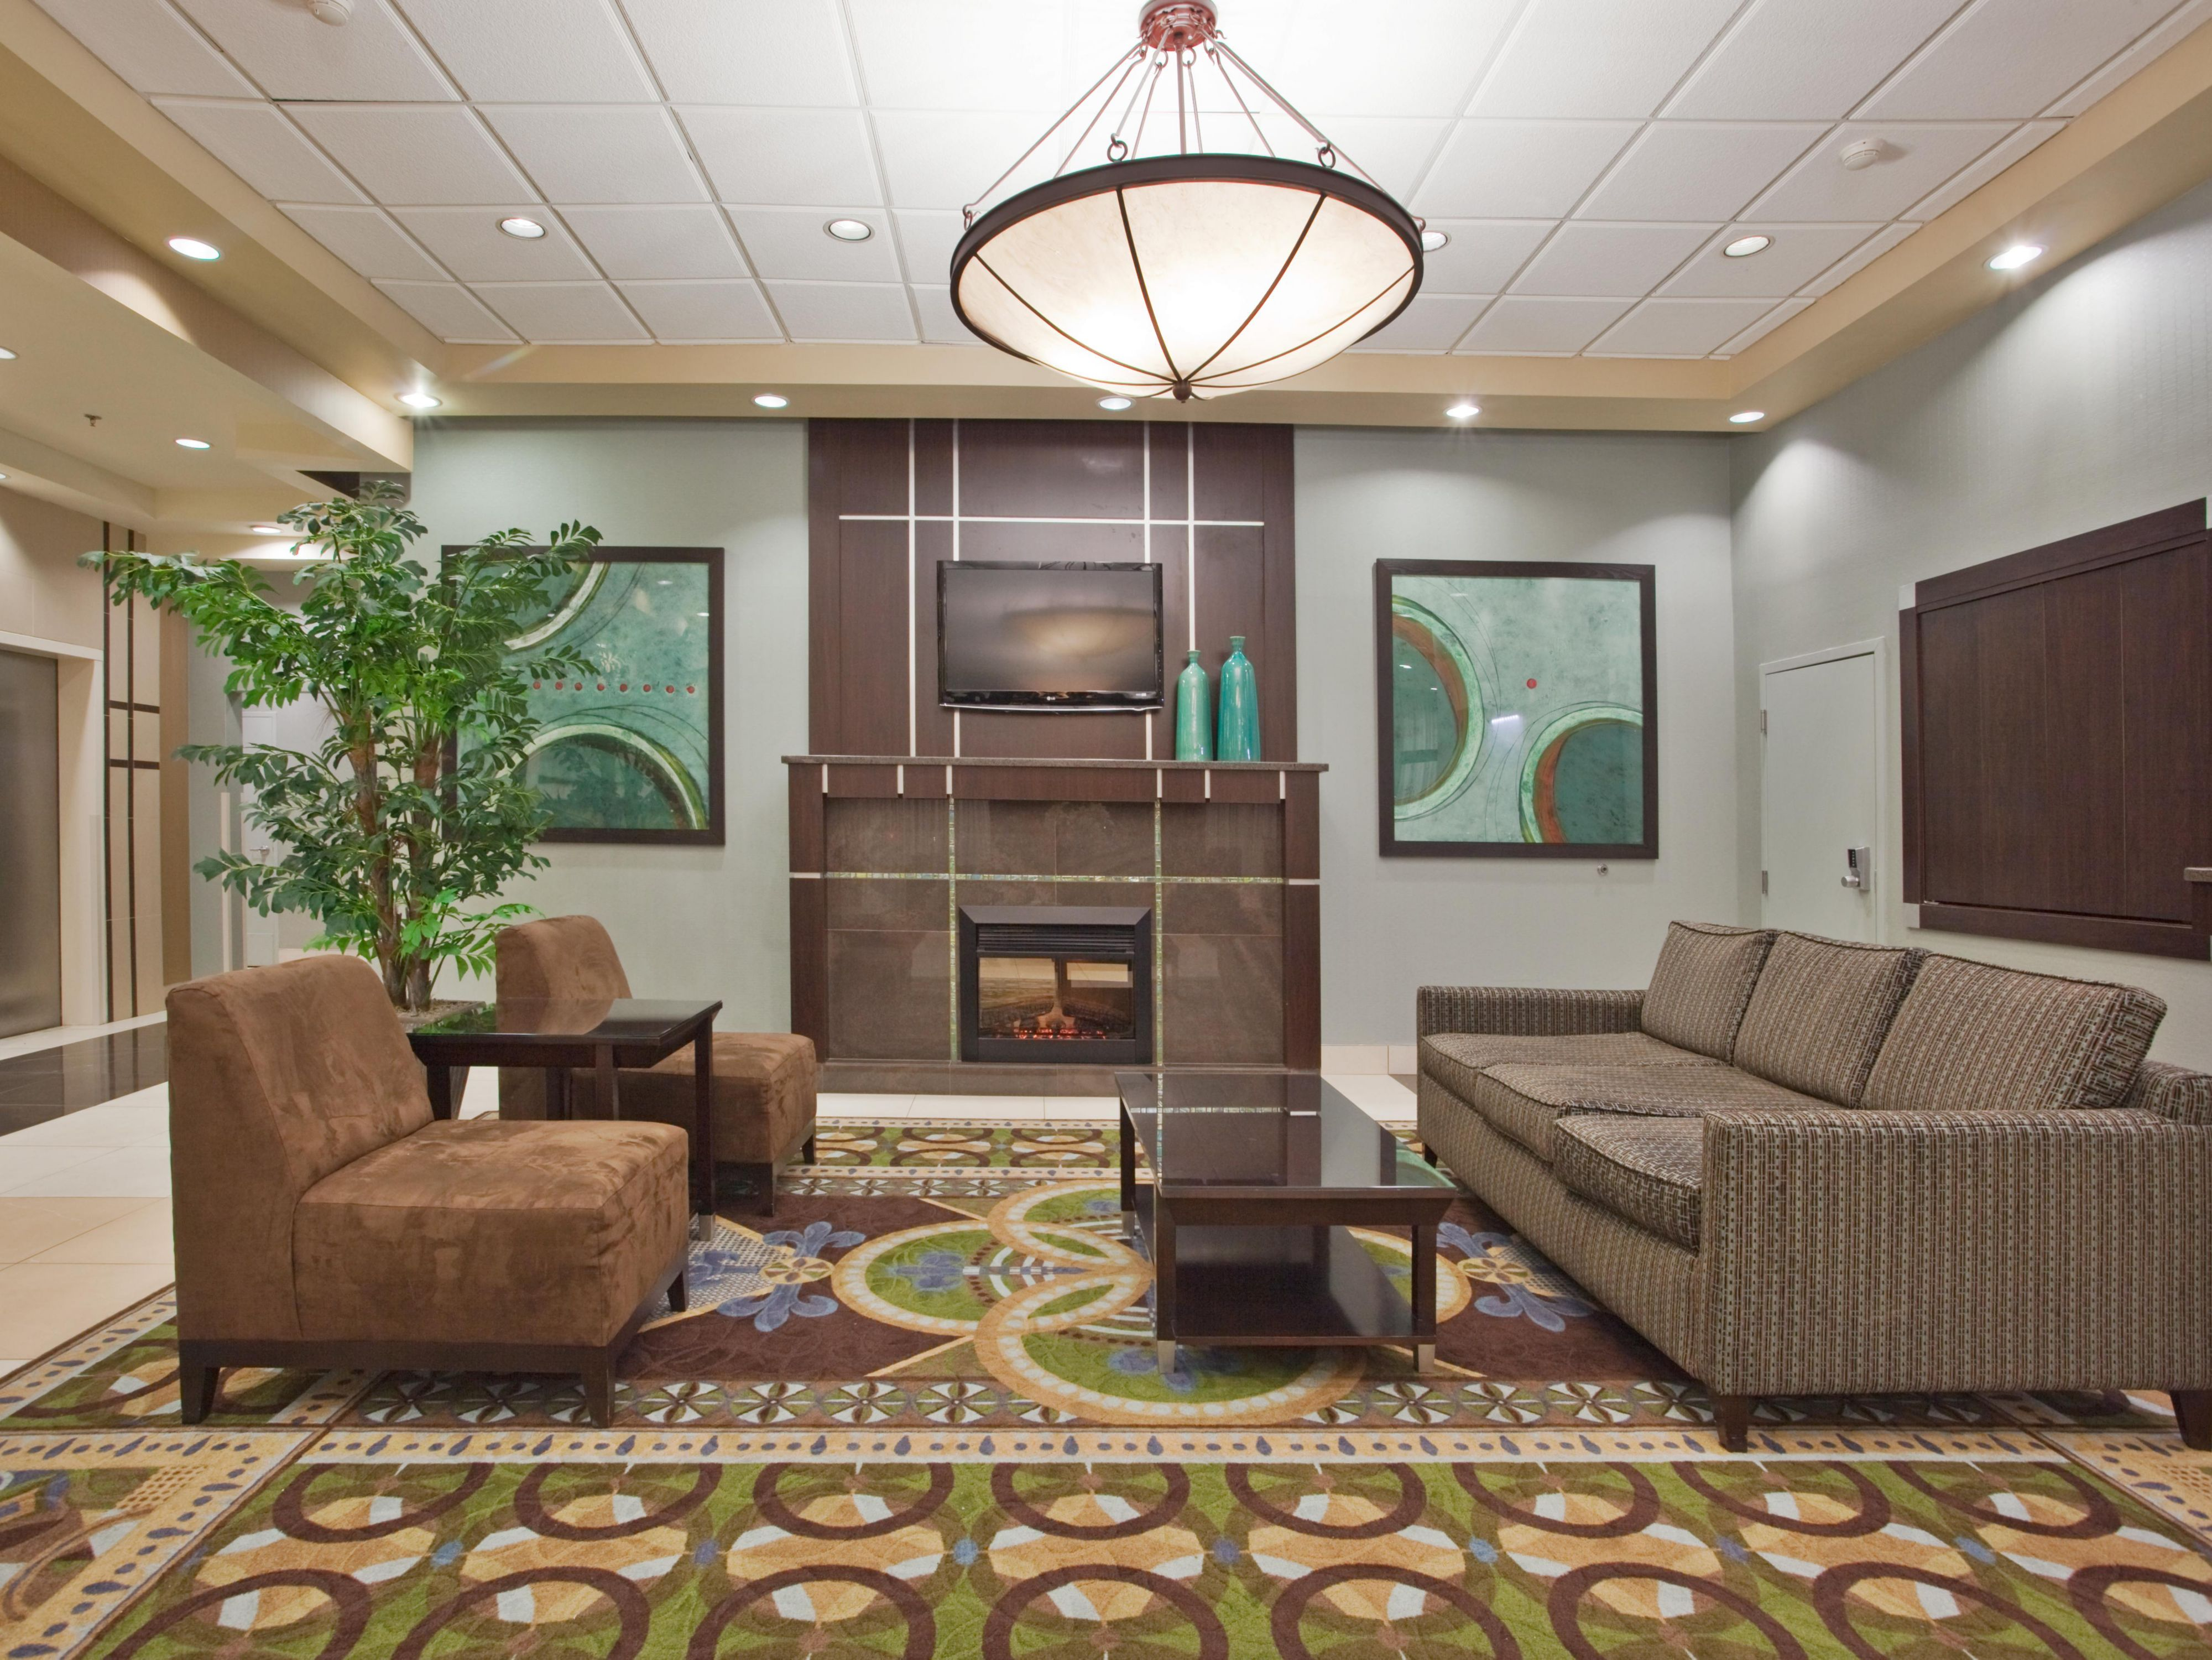 We have a Welcoming Fireplace at  Our Holiday Inn Binghamton Lobby